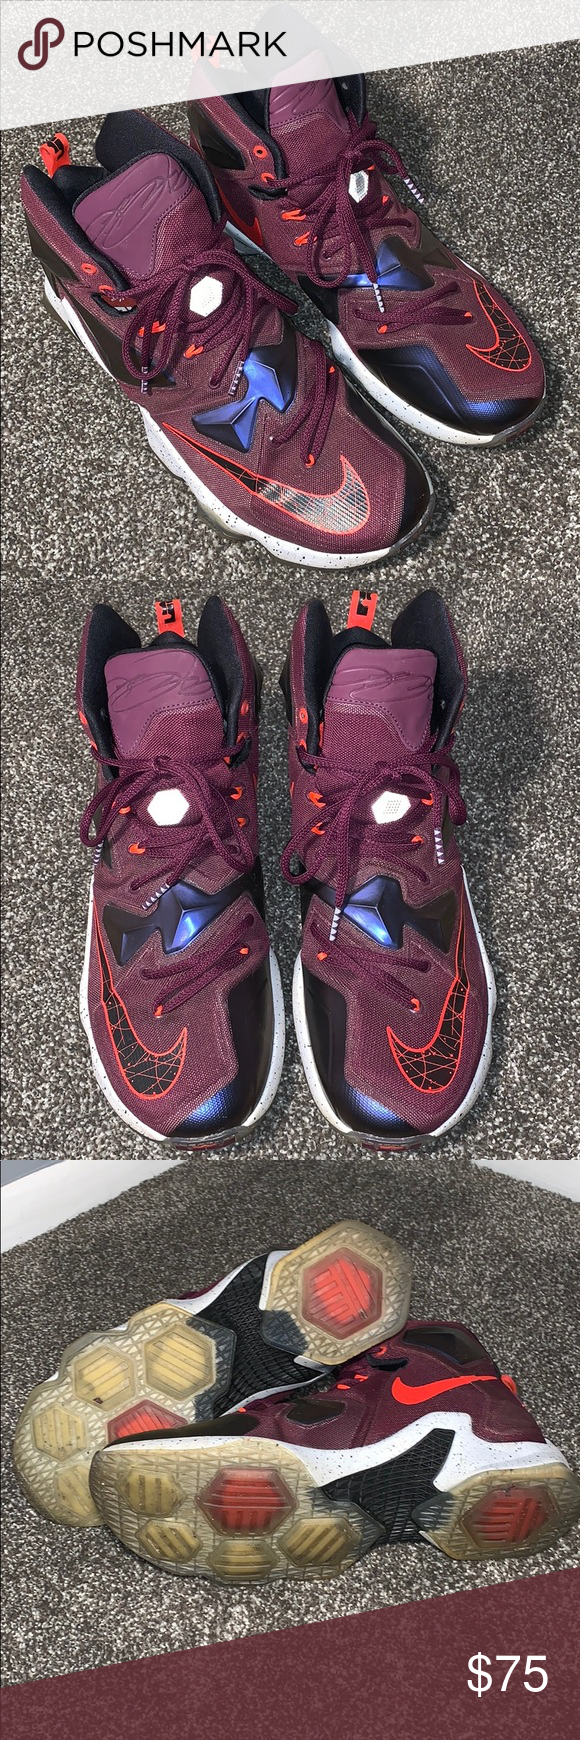 big sale 2f8f7 7460b Men's Nike LeBron 13 (Burgundy) Only worn a handful of times ...